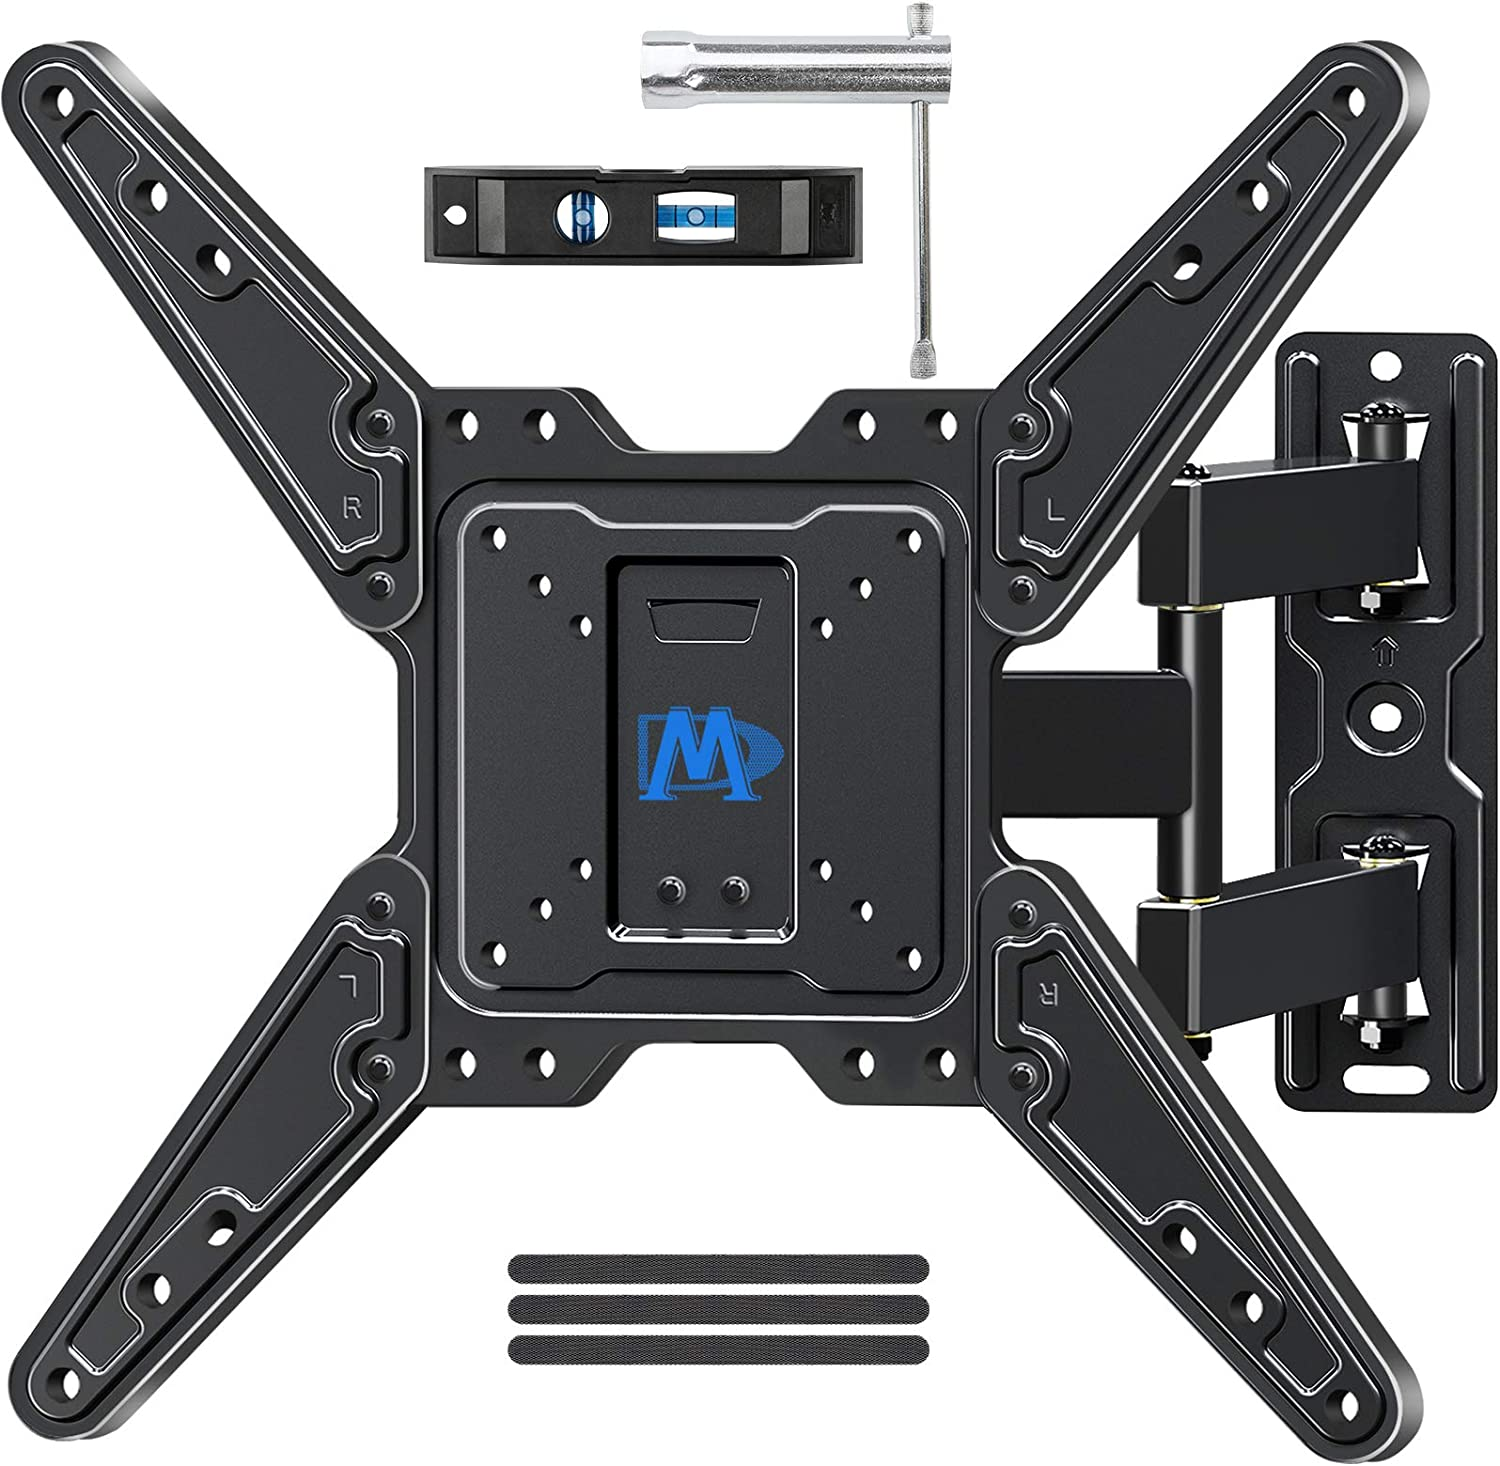 Mounting Dream Full Motion TV Wall Mount for Most 26-55 Inch TVs, Wall Mount for TV with Swivel Articulating Arms, Perfect Center Design TV Mounts Wall, up to VESA 400x400mm and 77 lbs. MD2413-MX: Electronics